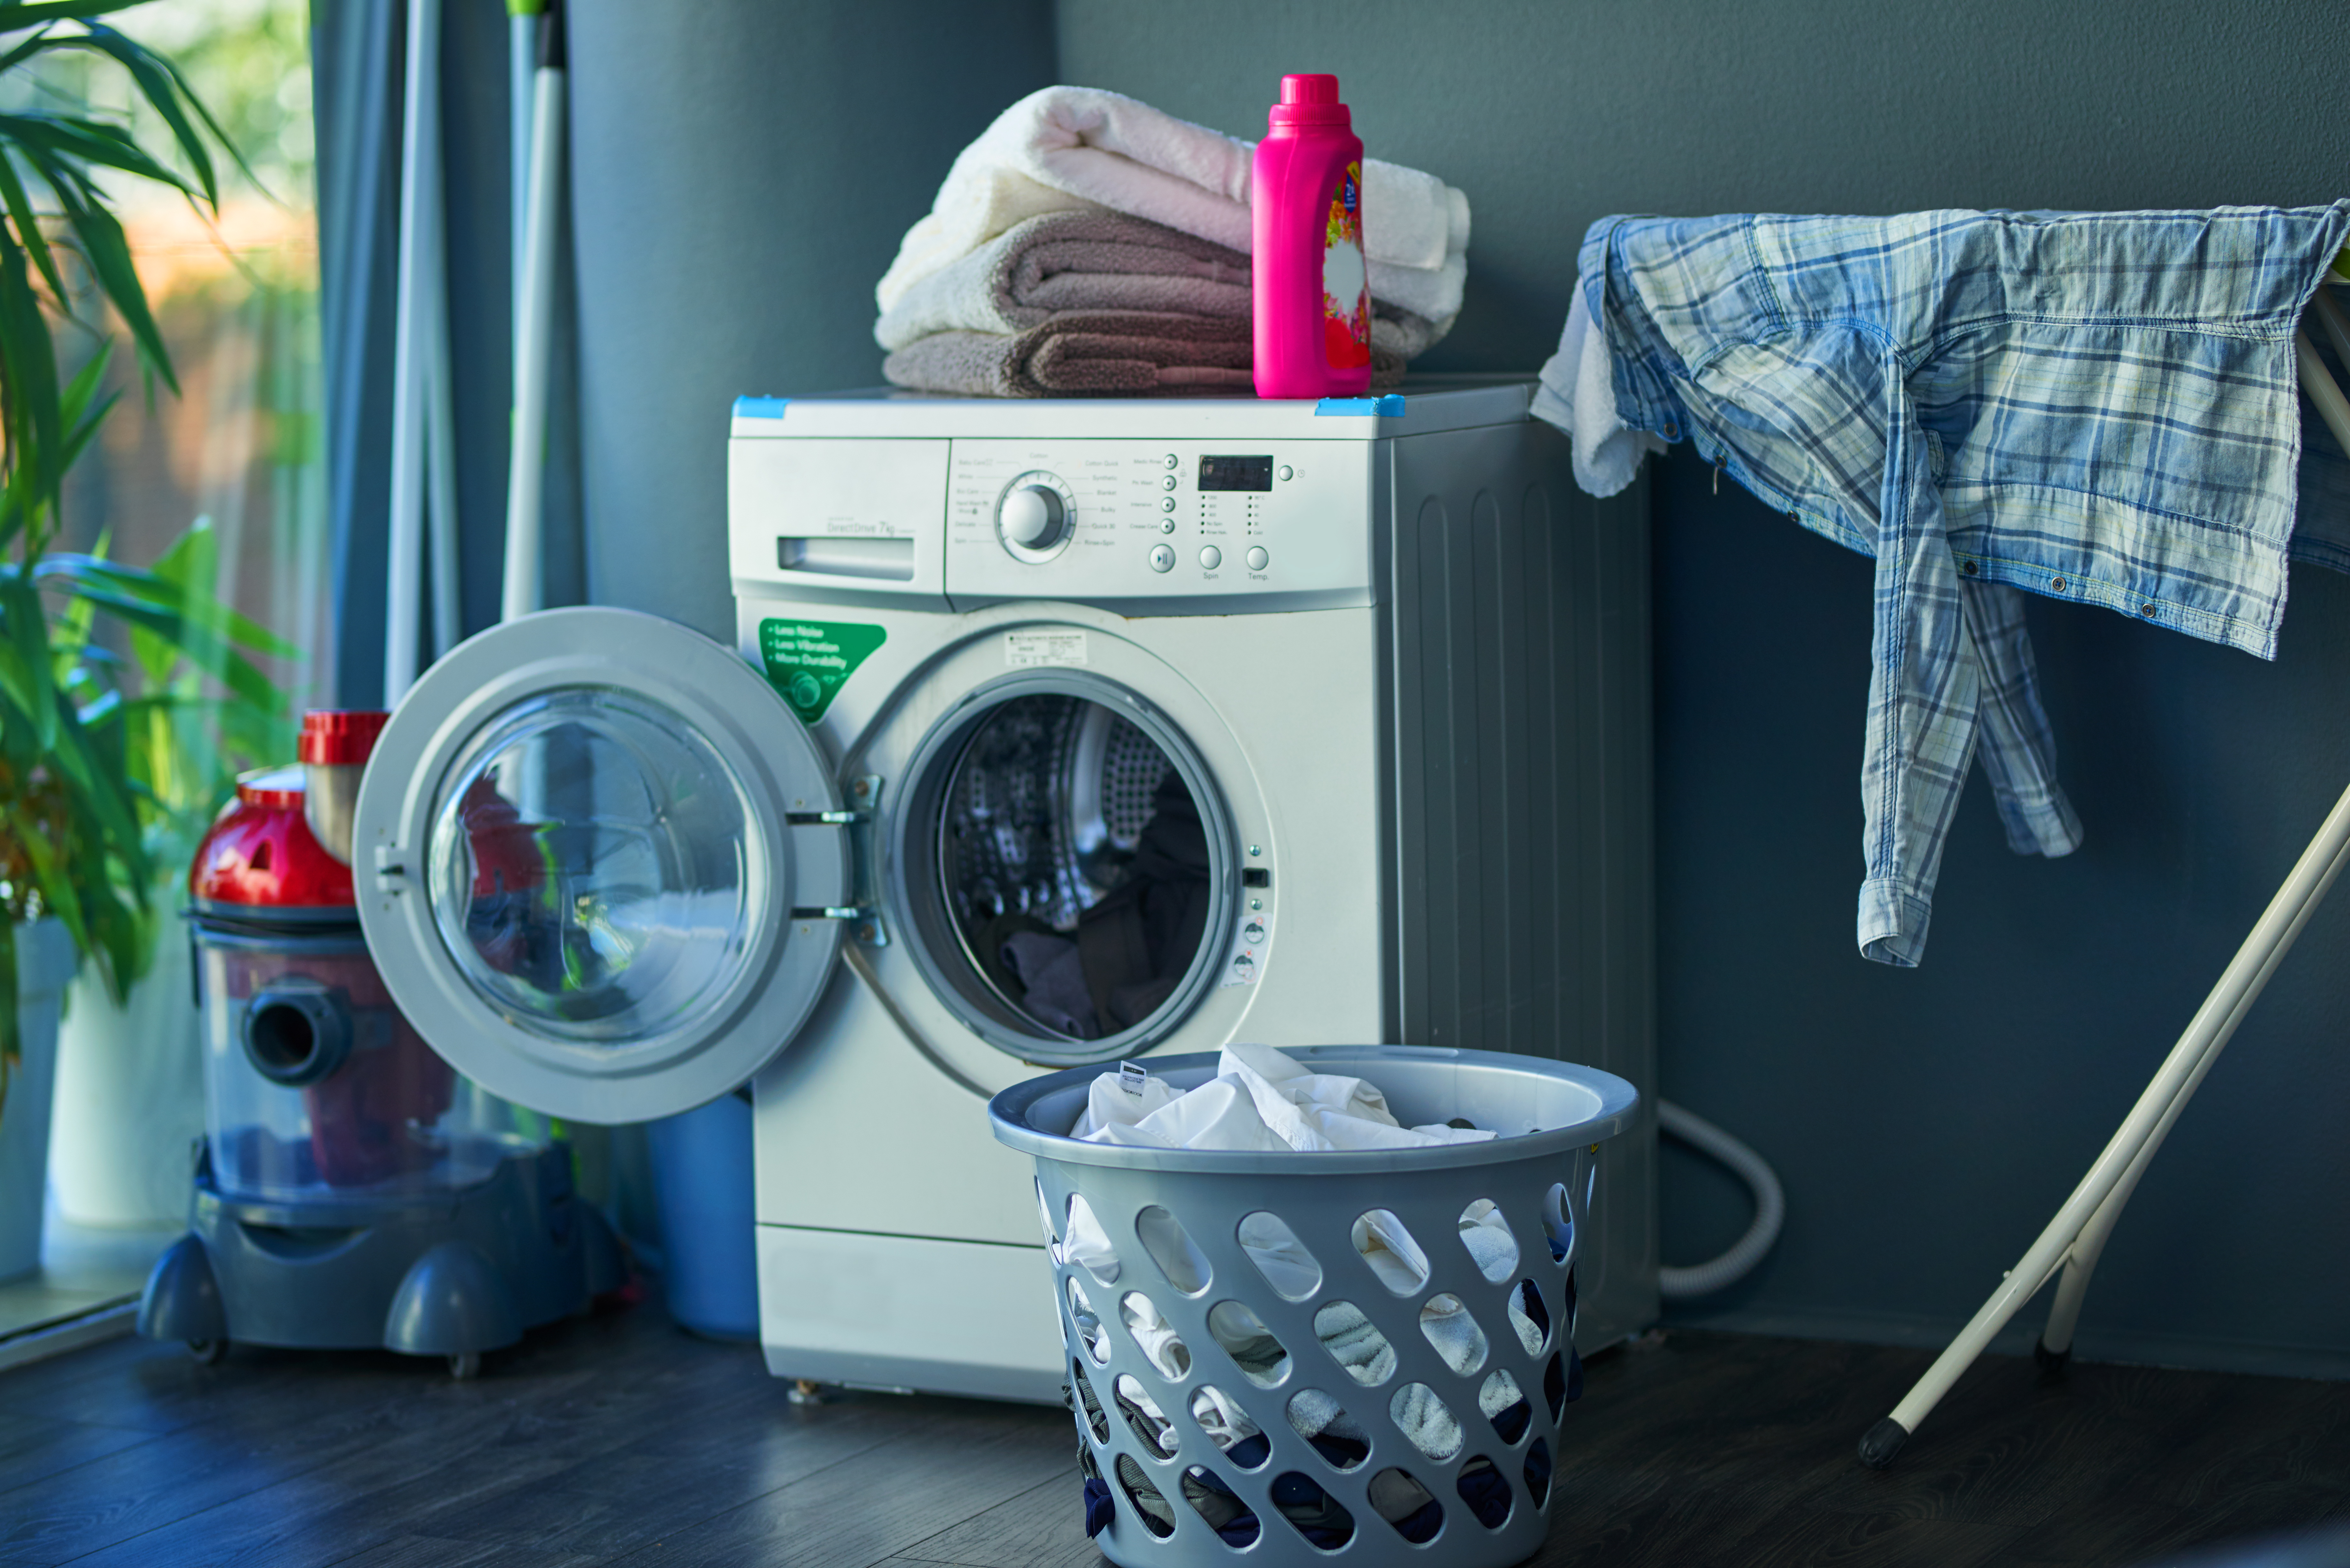 Clothing you don't have to wash, explained